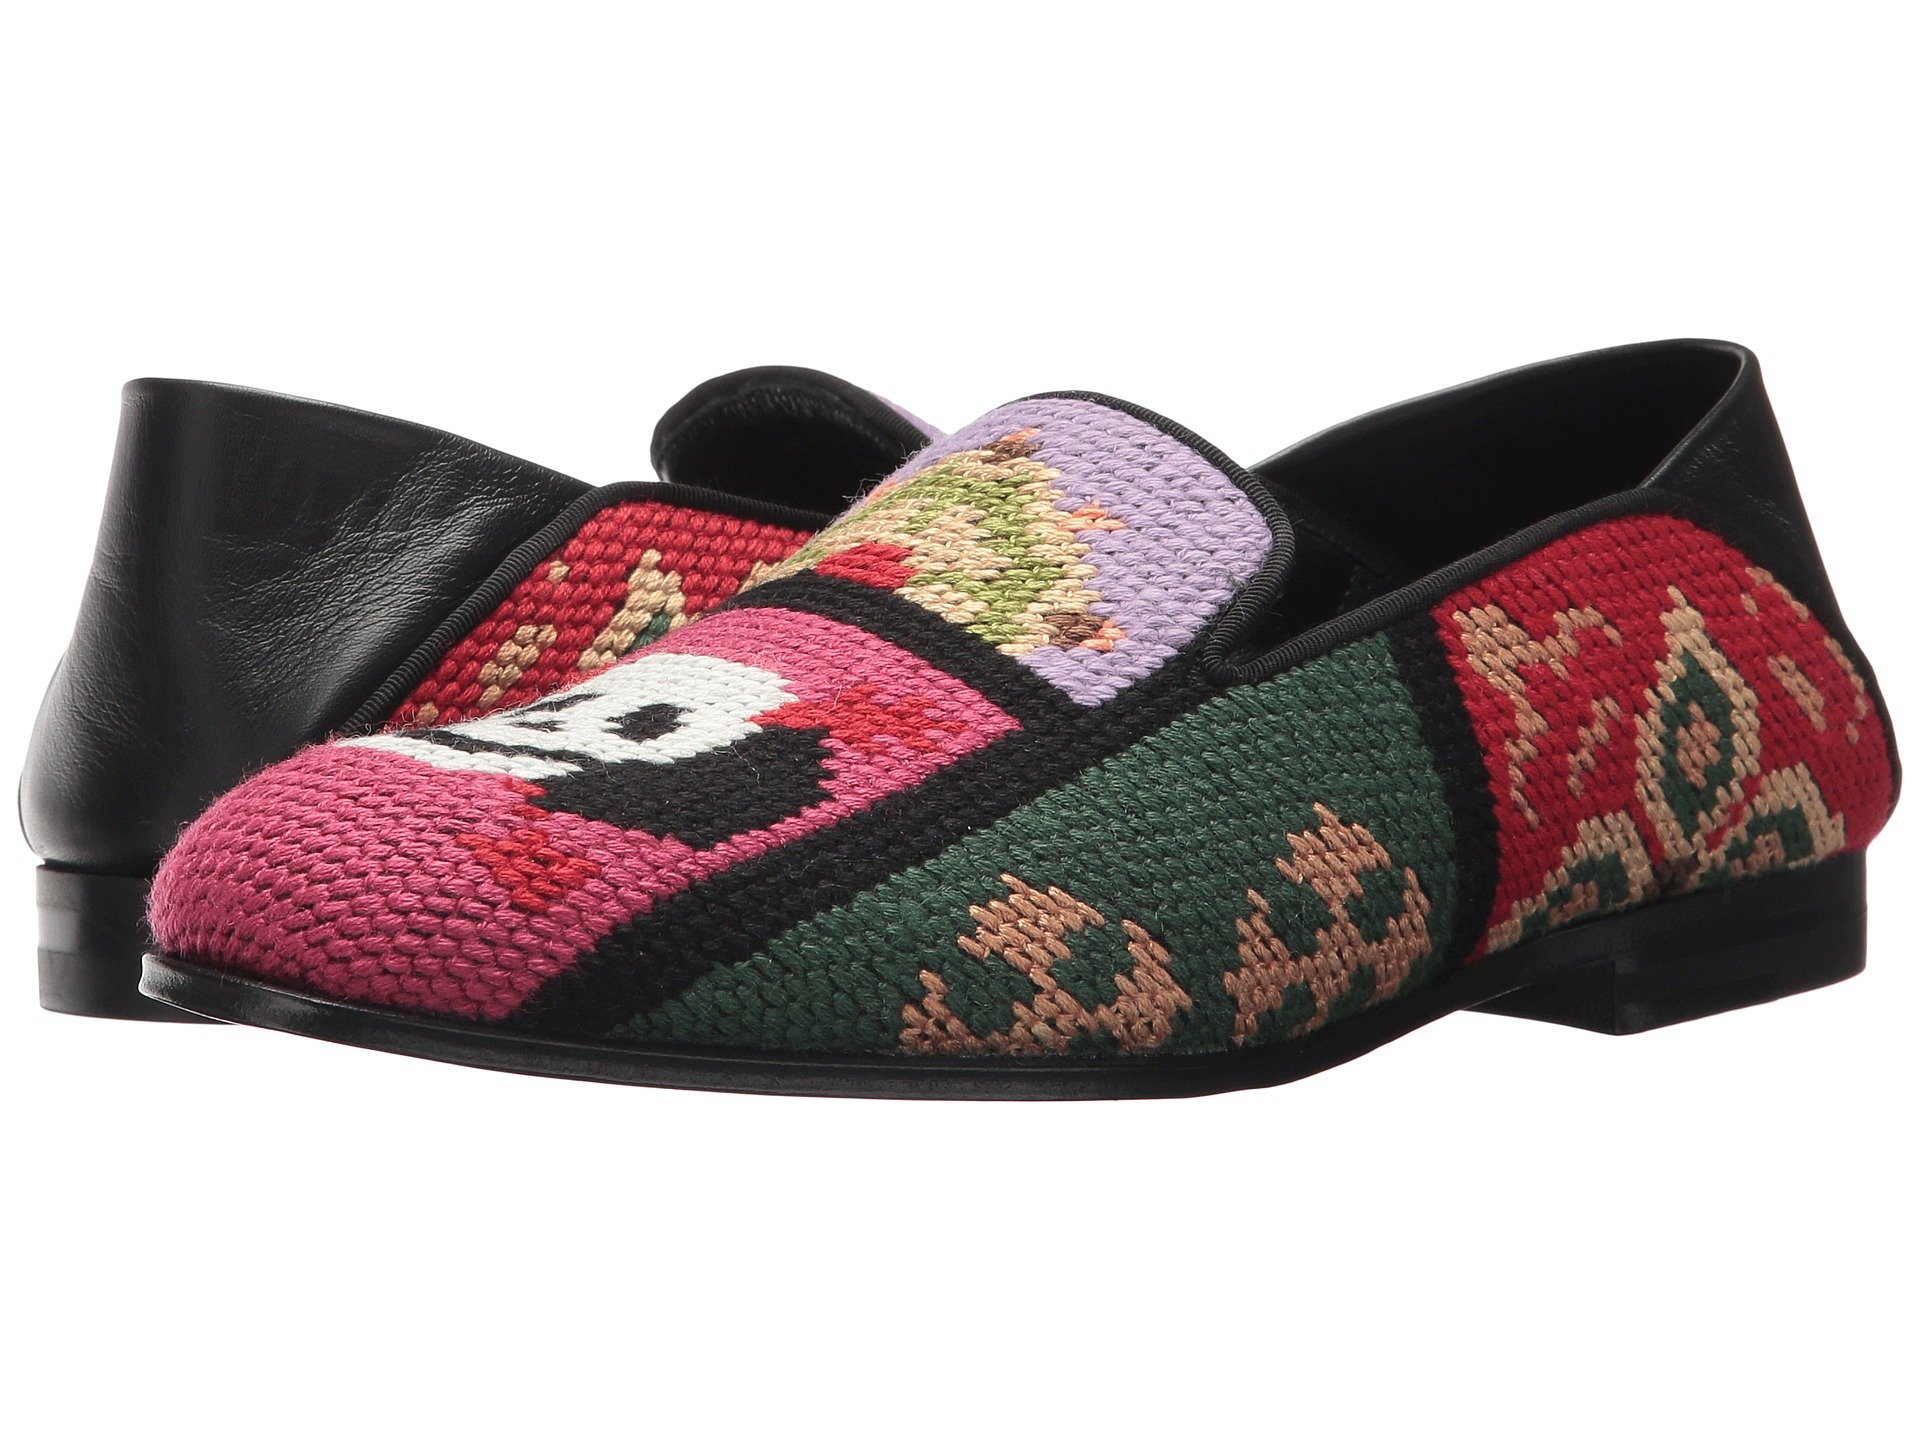 Tapestry Patchwork Slipper, Pink Black